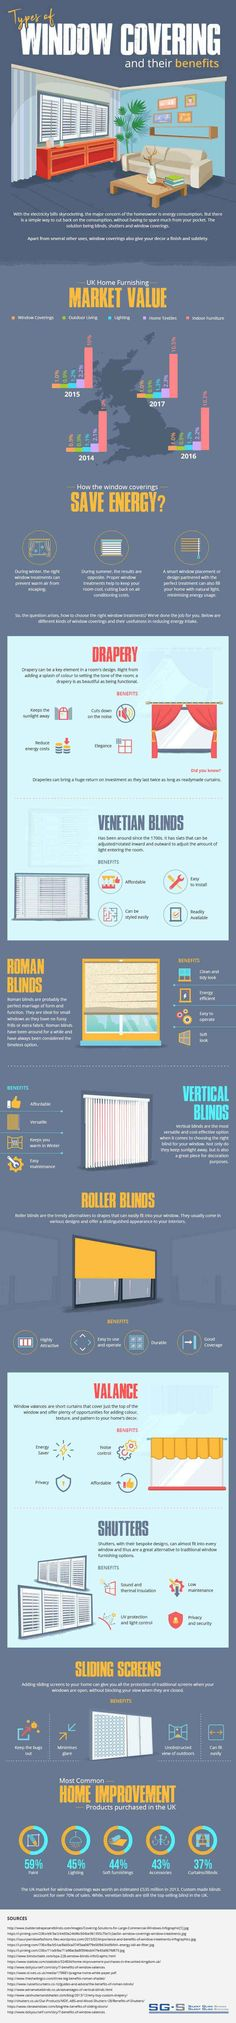 Types of Window Coverings and Their Benefits (Infographic) - SG-S